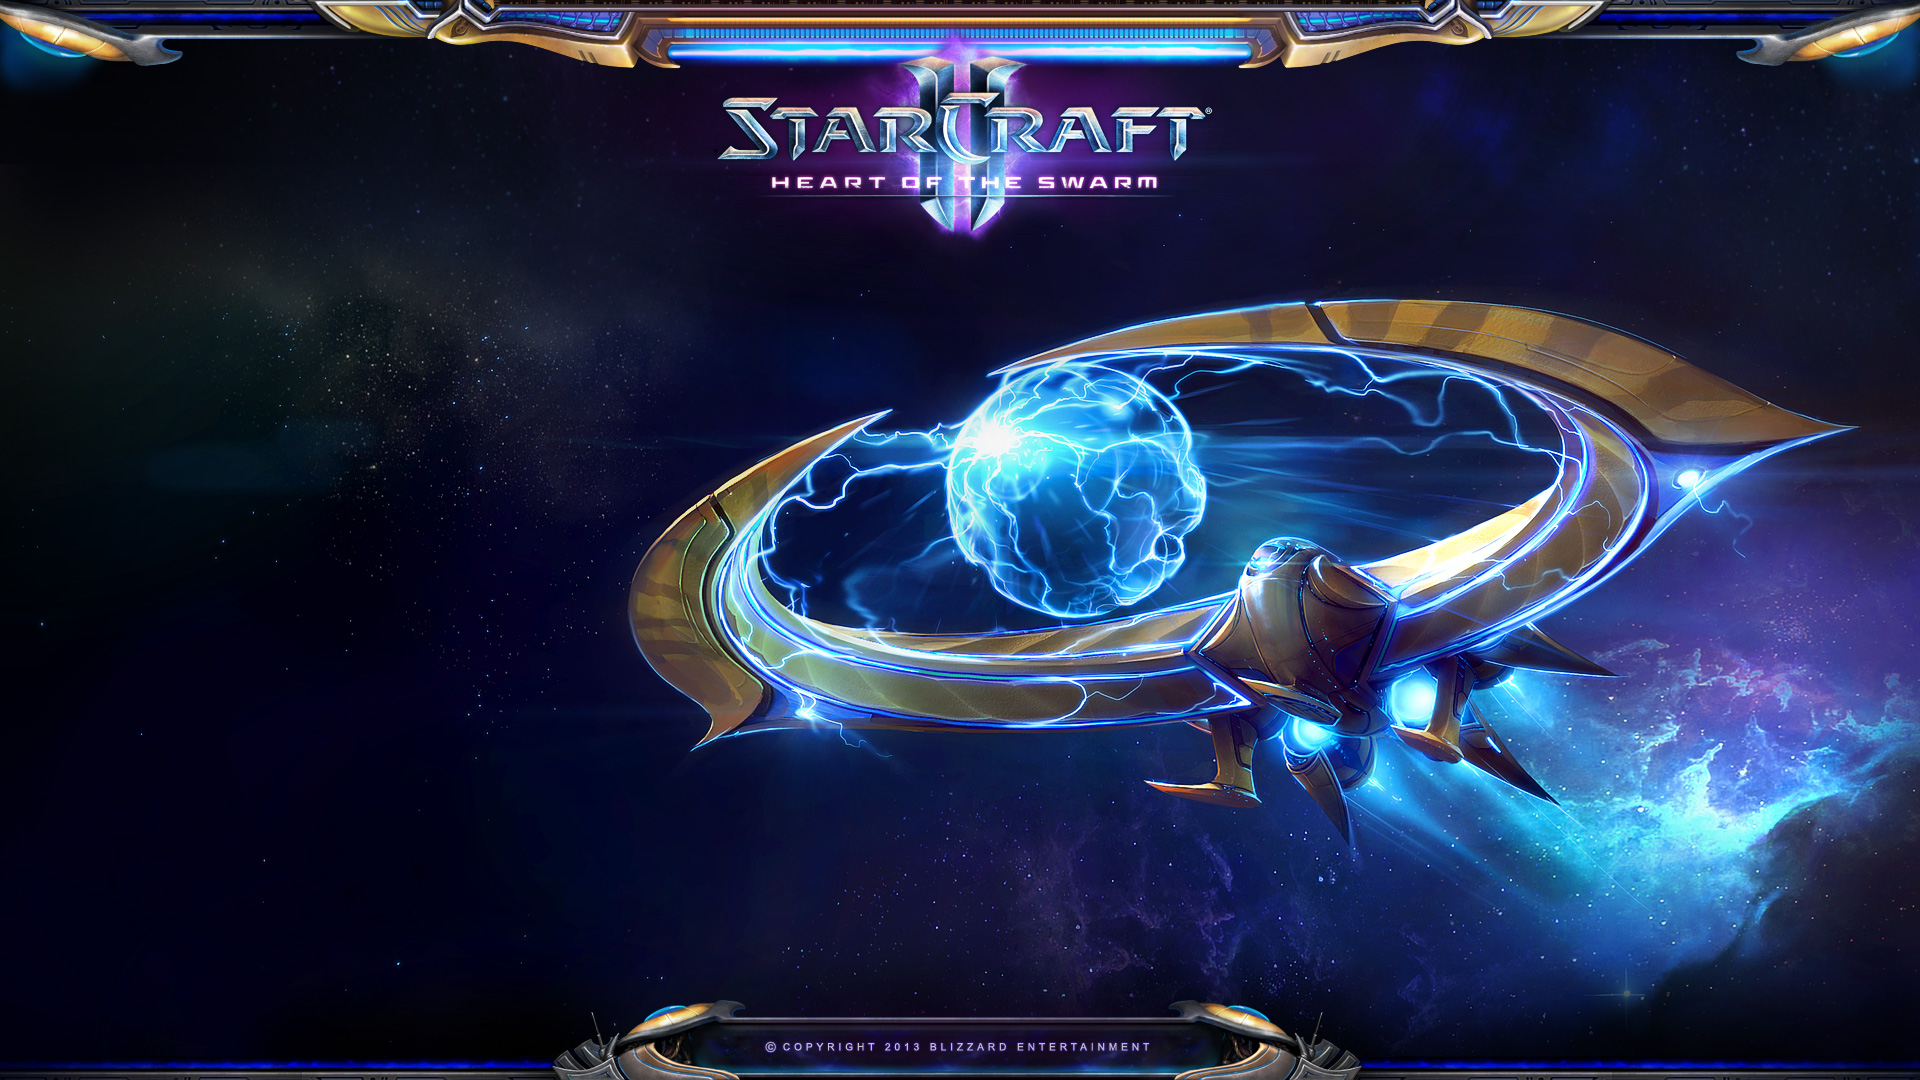 Starcraft 2 Heart of the Swarm wallpaper 16